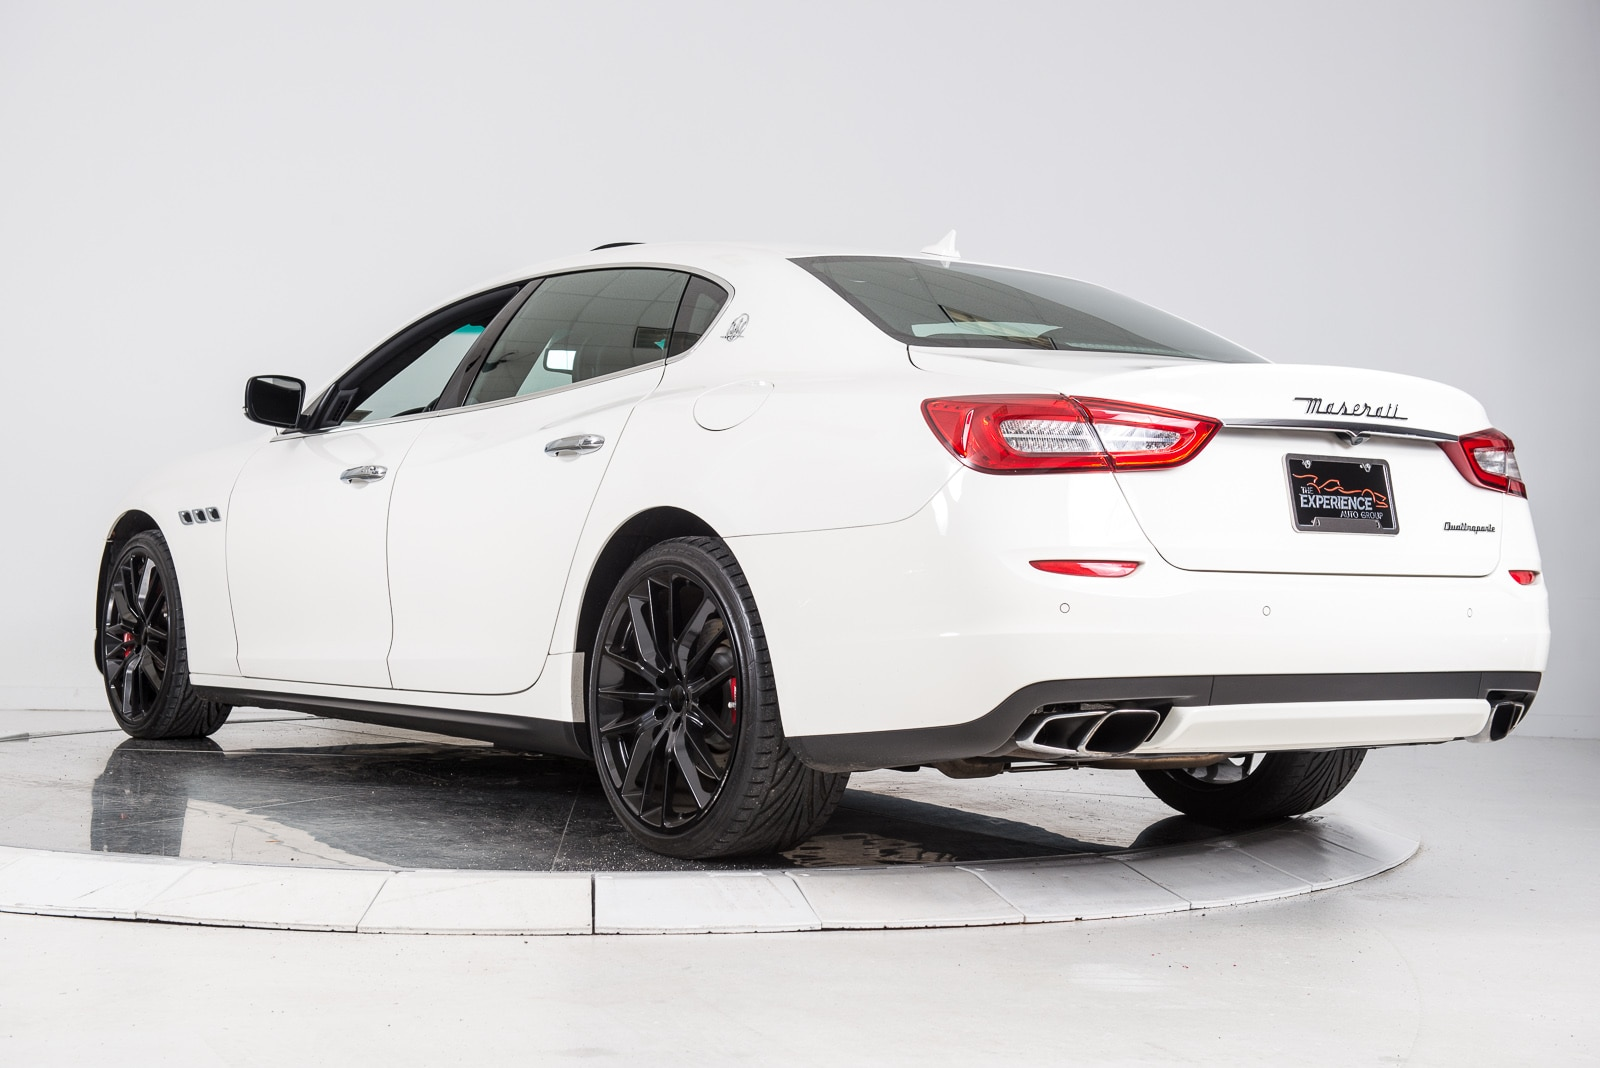 used 2014 maserati quattroporte gts for sale plainview near long island ny vin. Black Bedroom Furniture Sets. Home Design Ideas